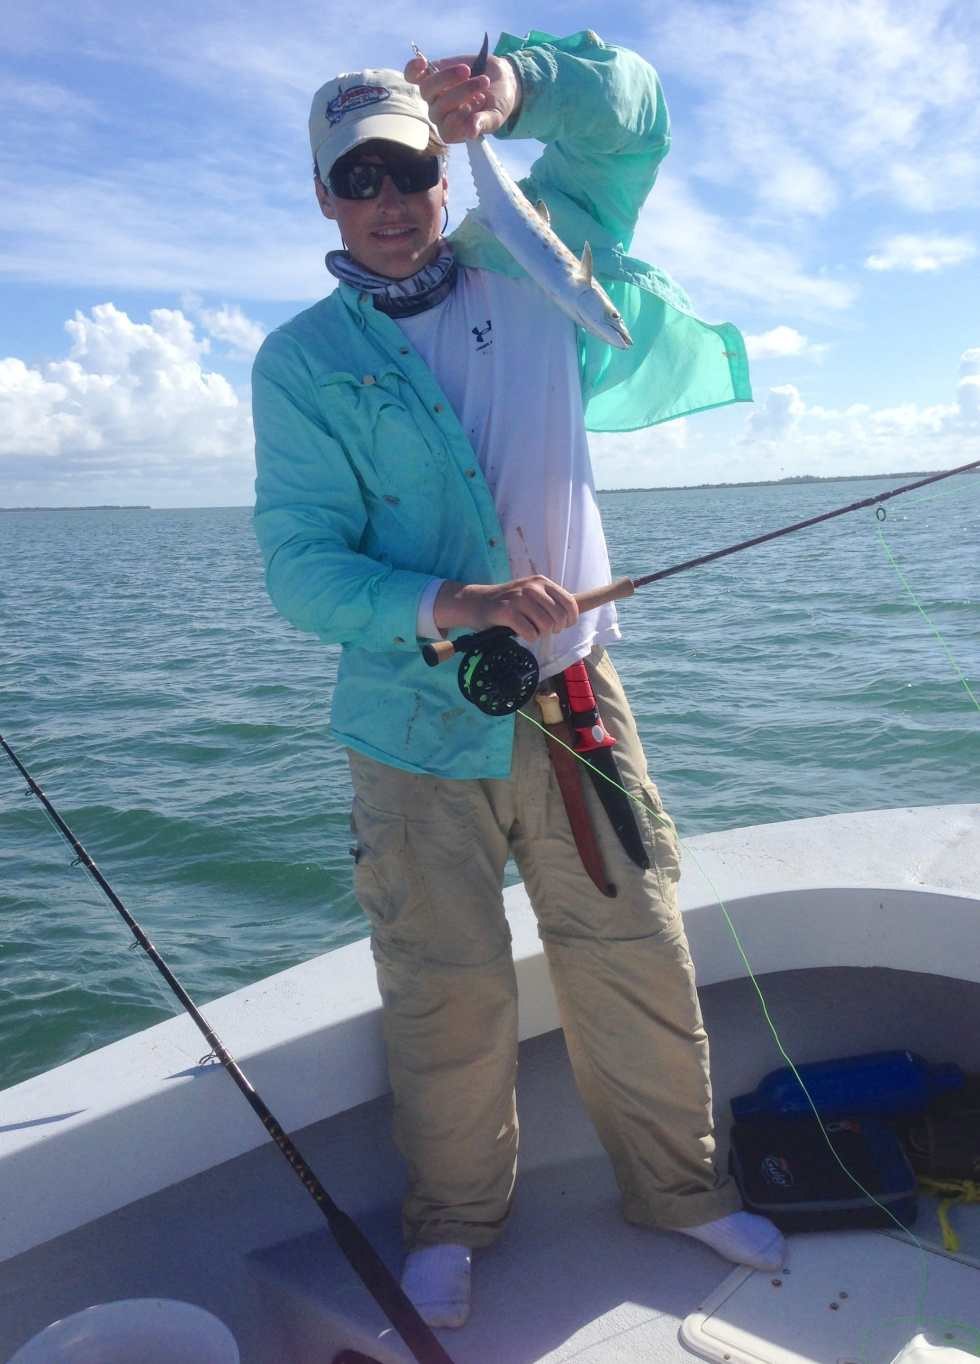 Fly Fishing, Spanish Mackerel, Sanibel & Captiva Islands & Fort Myers Charters & Fishing Guide Service. Saturday, October 21, 2017, [File Photo: 7-7-14]